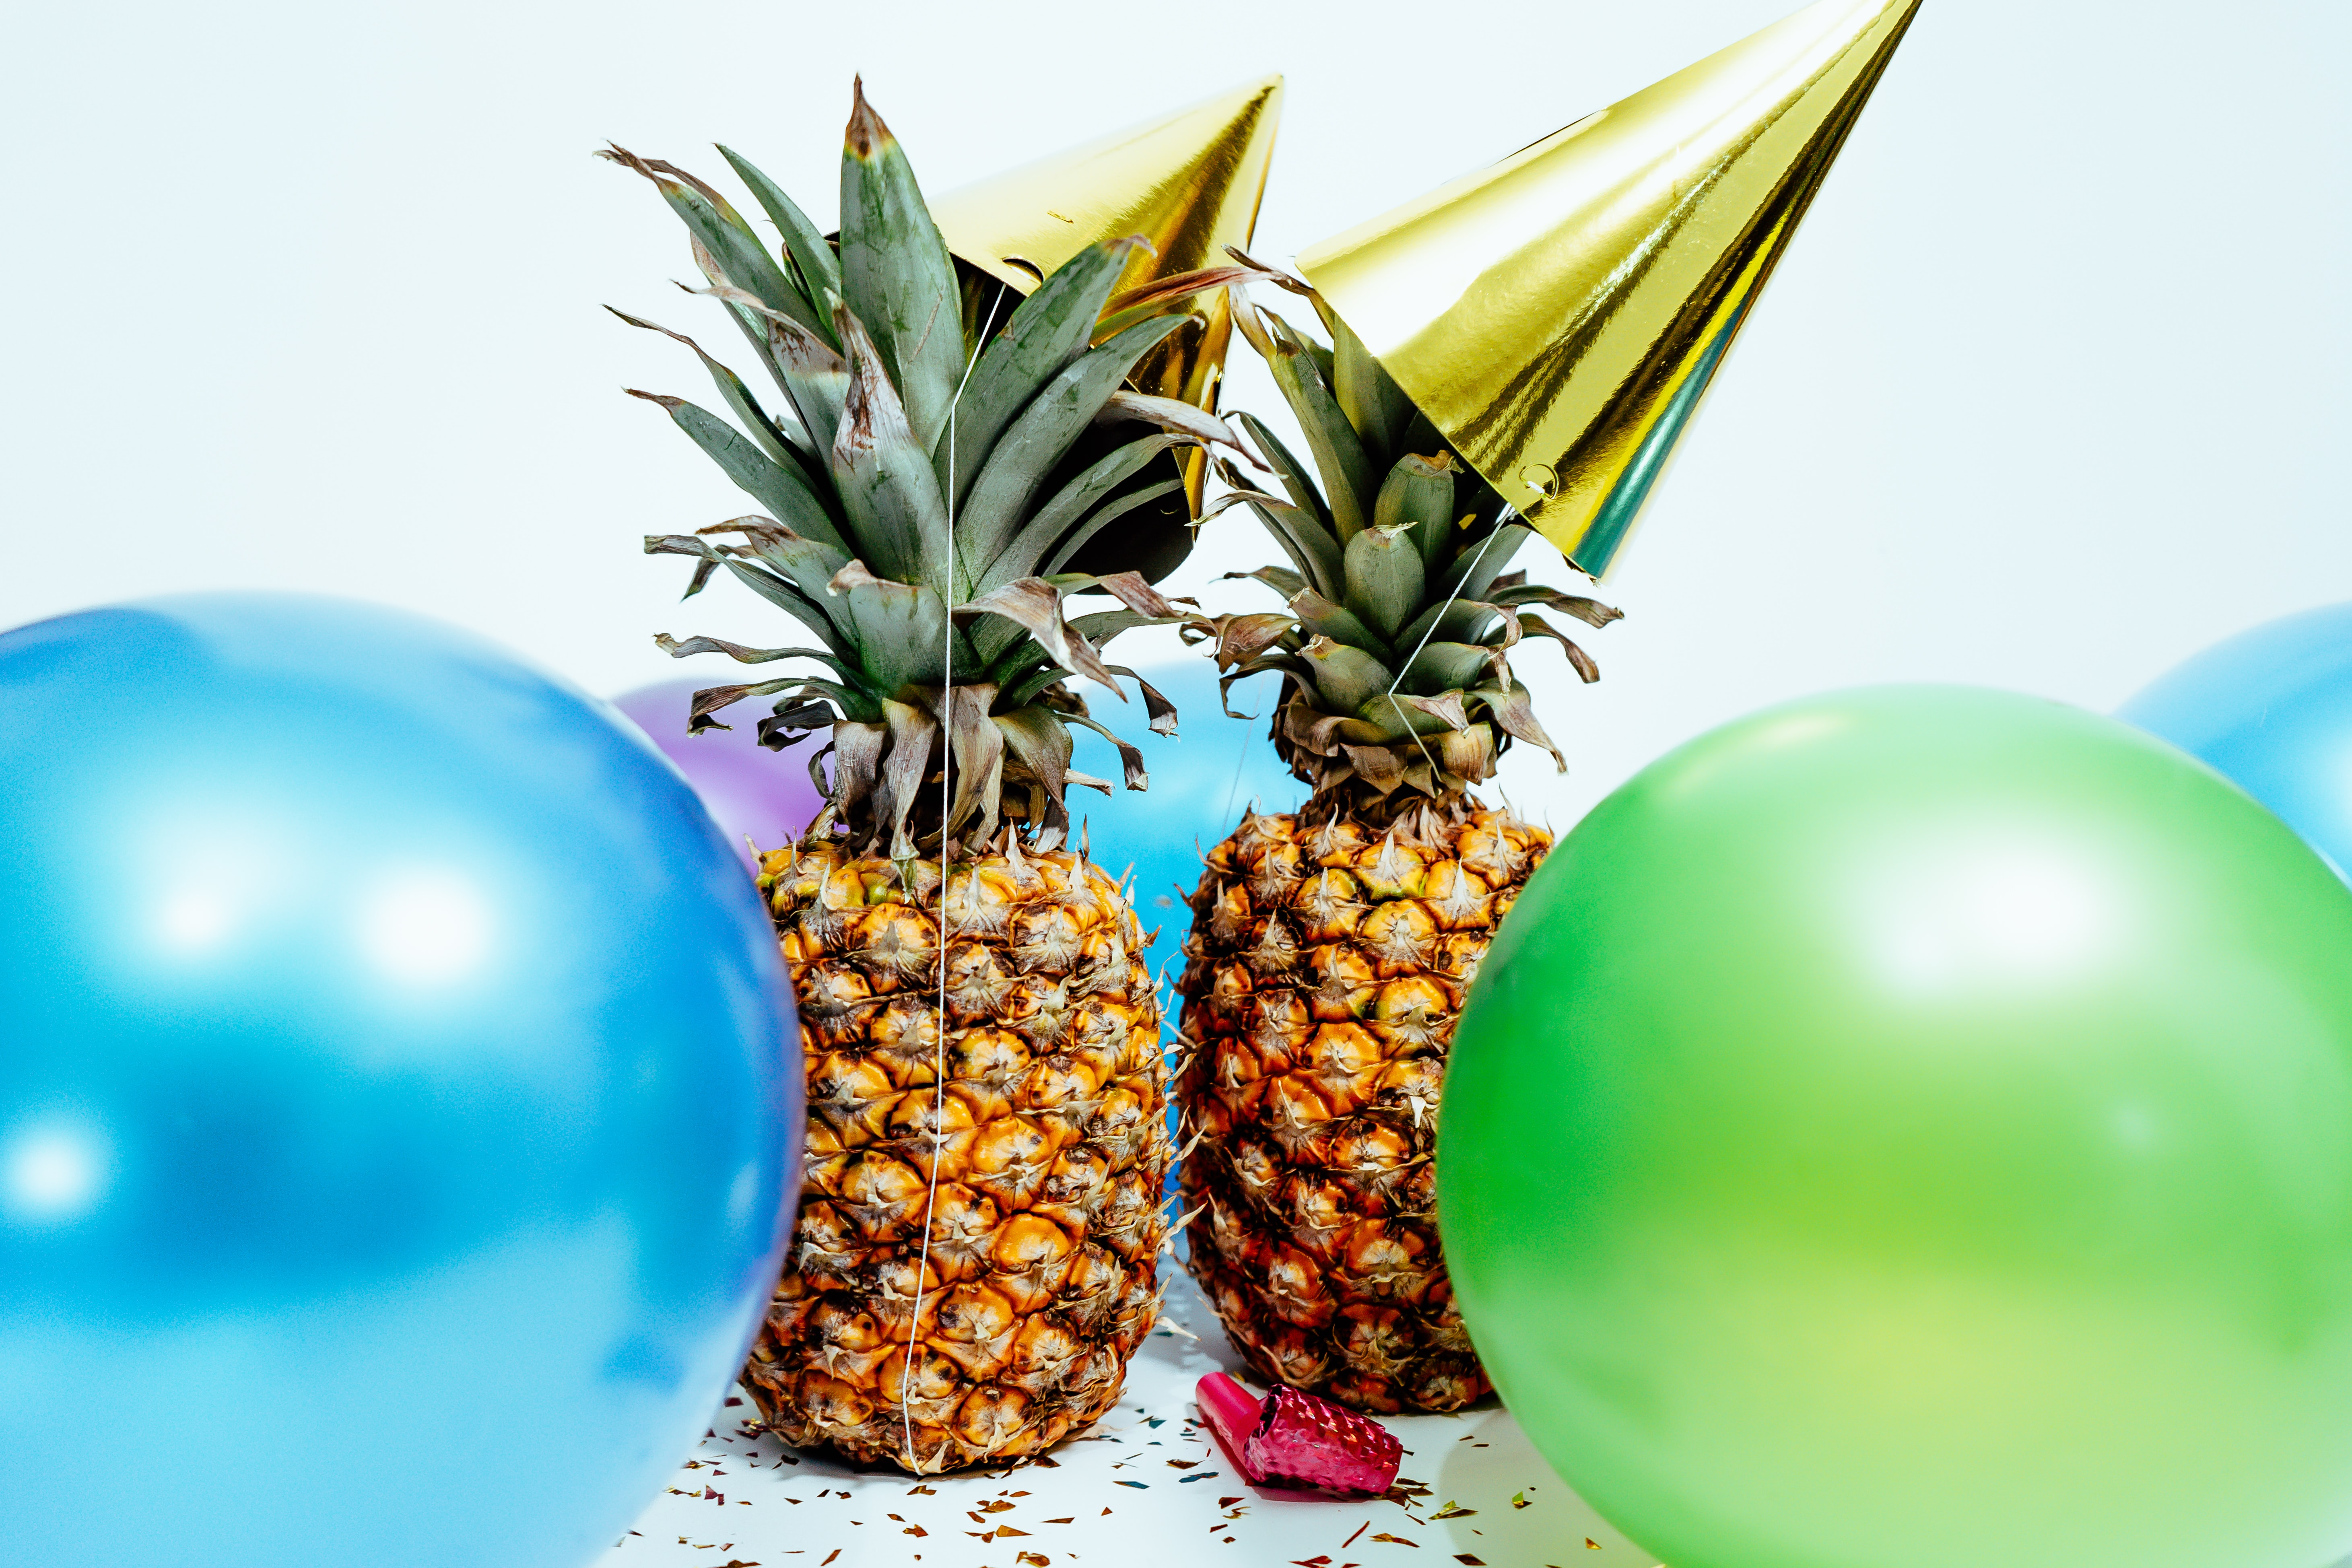 Two pineapples wearing party hats, surrounded by balloons, by Scott Webb Photography